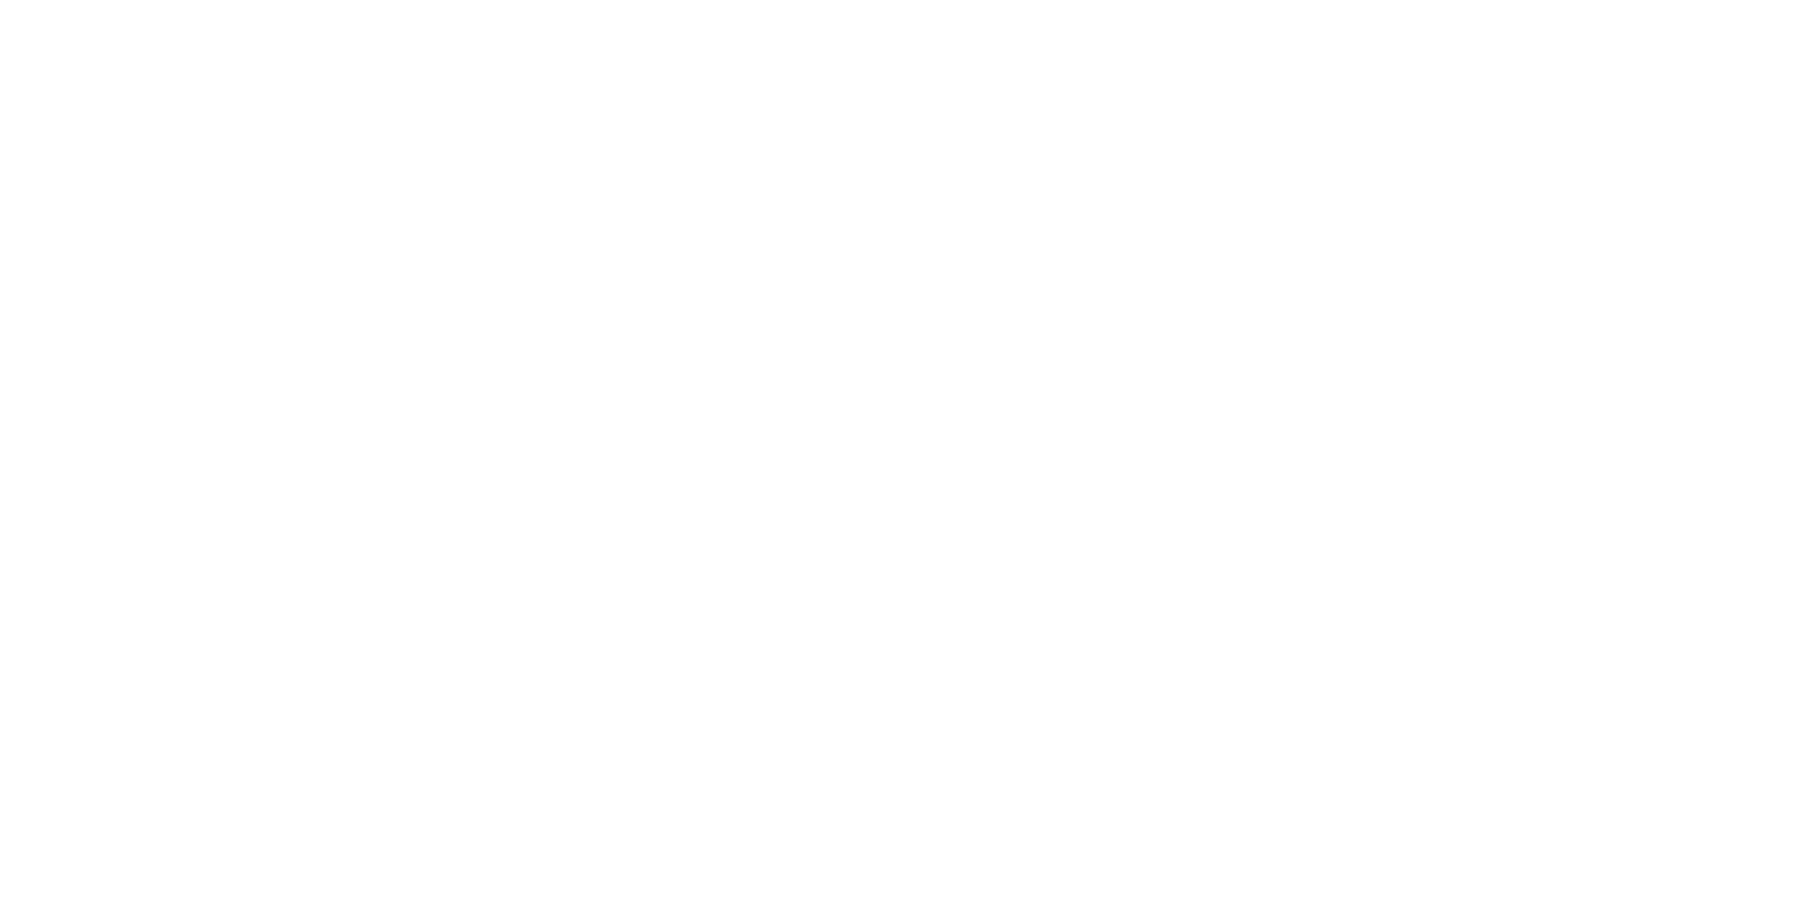 Basalt Chamber of Commerce